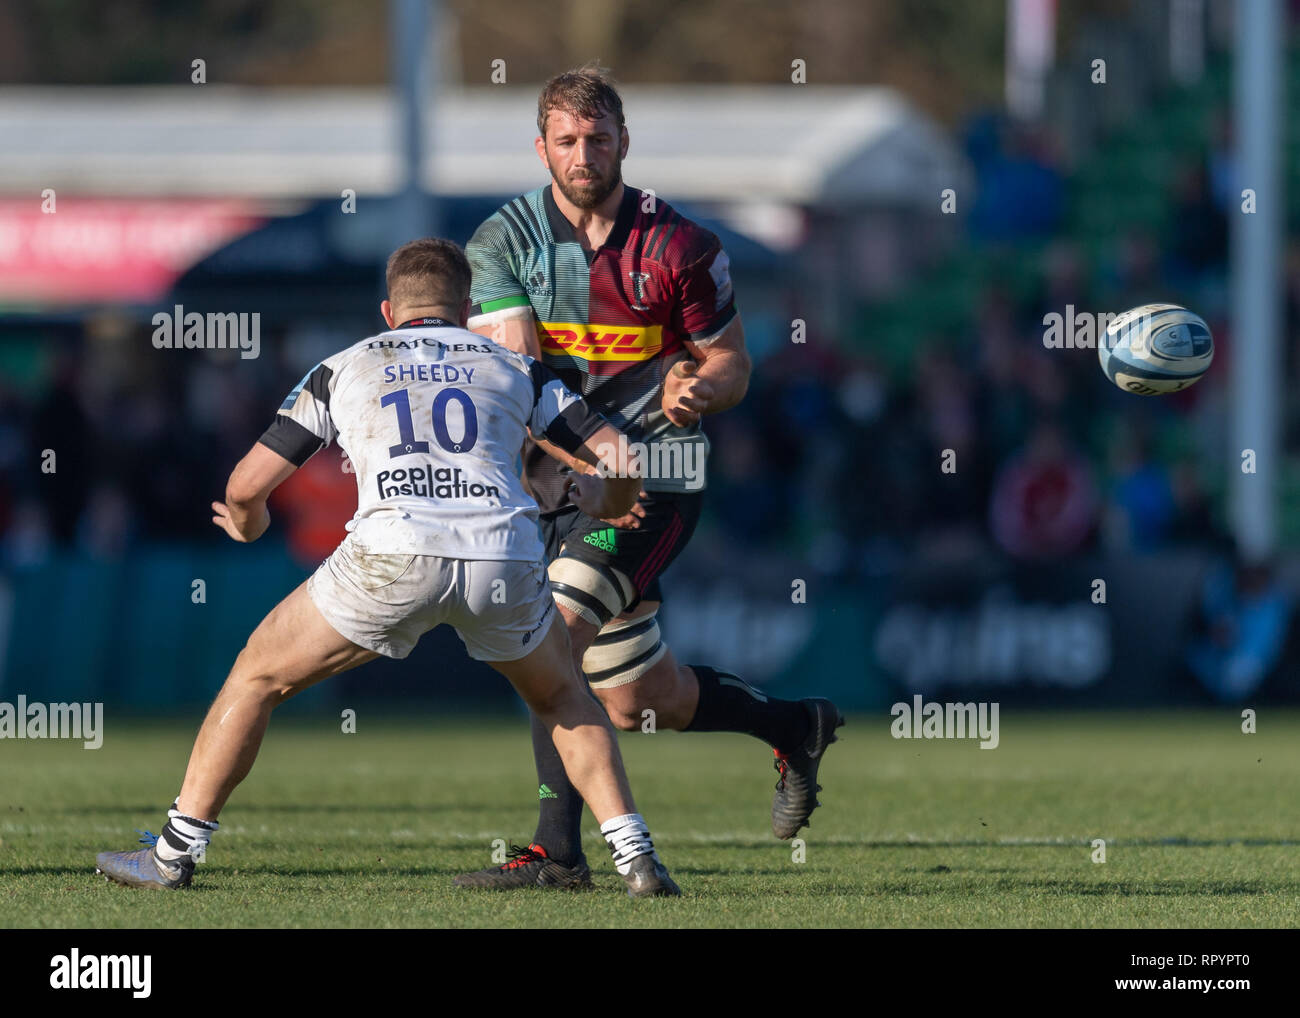 London, UK. 23rd Feb, 2019. Chris Robshaw of Harlequins (CC) in action during Gallagher Premiership match between Harlequins and Bristol Bears at Twickenham Stoop on Saturday, 23 February 2019. LONDON ENGLAND. (Editorial use only, license required for commercial use. No use in betting, games or a single club/league/player publications.) Credit: Taka G Wu/Alamy News Credit: Taka Wu/Alamy Live News Stock Photo